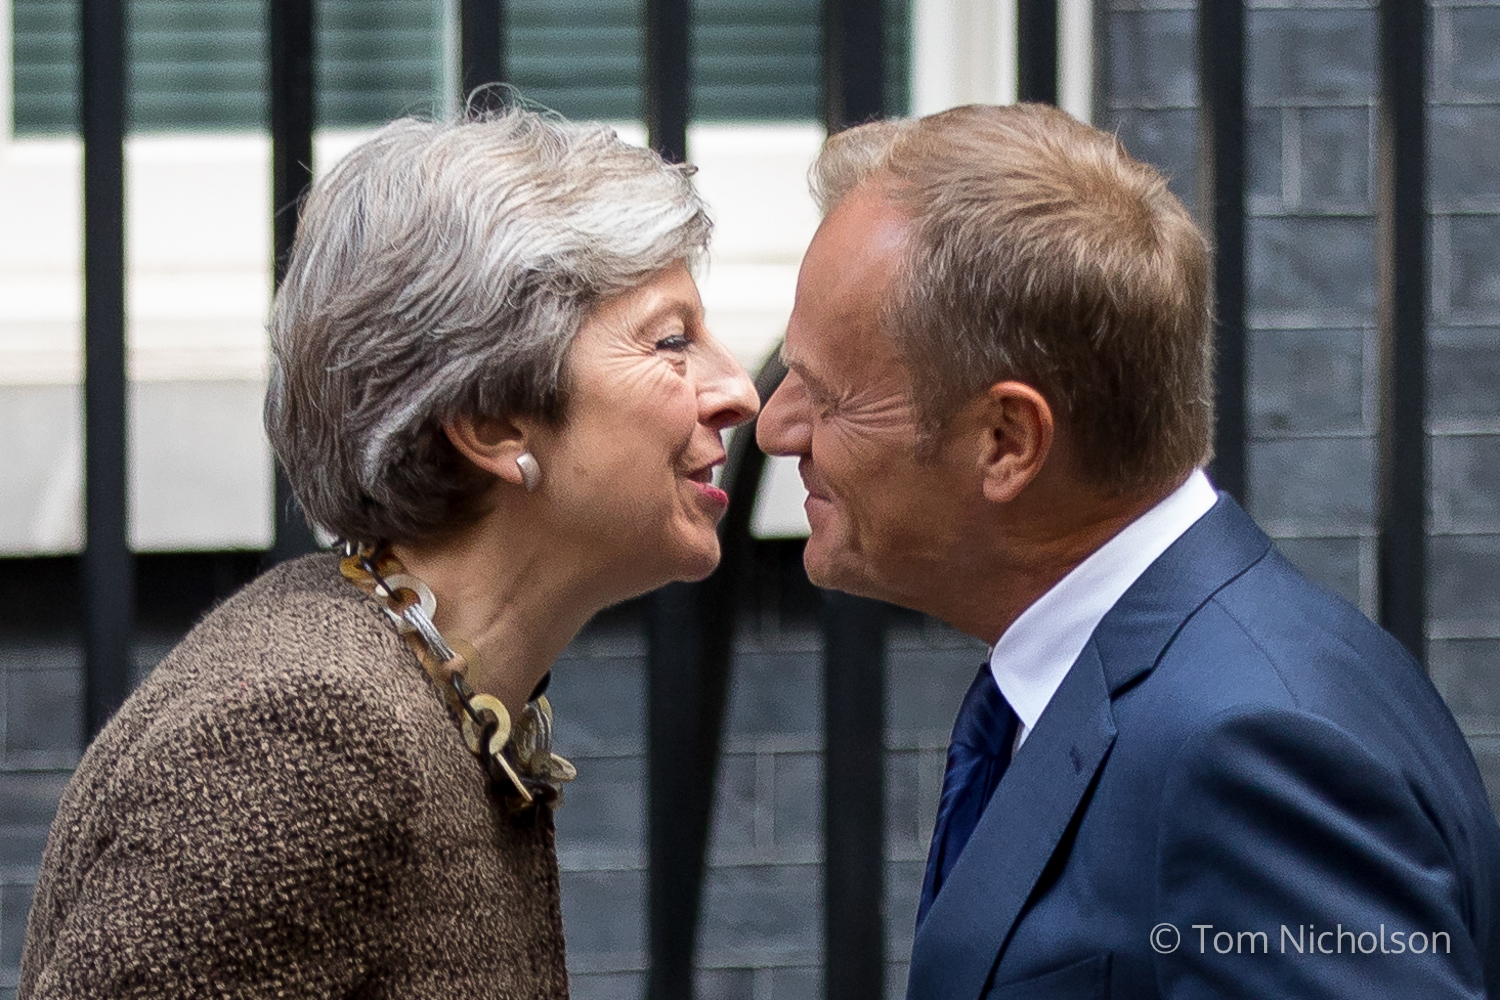 ©2017 Tom Nicholson. 26/09/2017. London, UK. President of the European Council Donald Tusk meets British Prime Minister Theresa May in Downing Street.